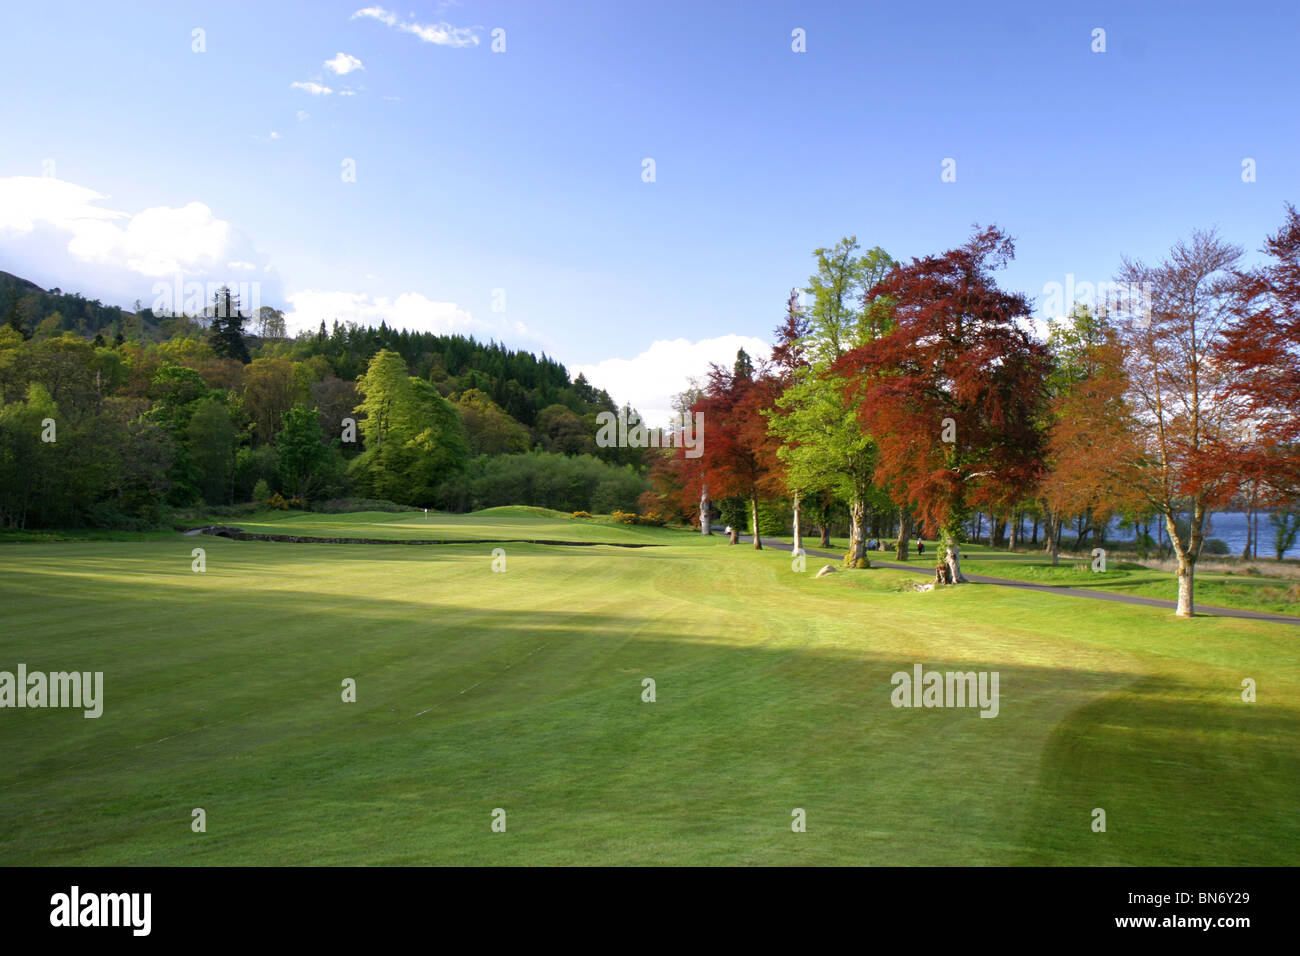 Loch Lomond Golf Course, Glasgow, Scotland. Hole 16 fairway with trees. - Stock Image